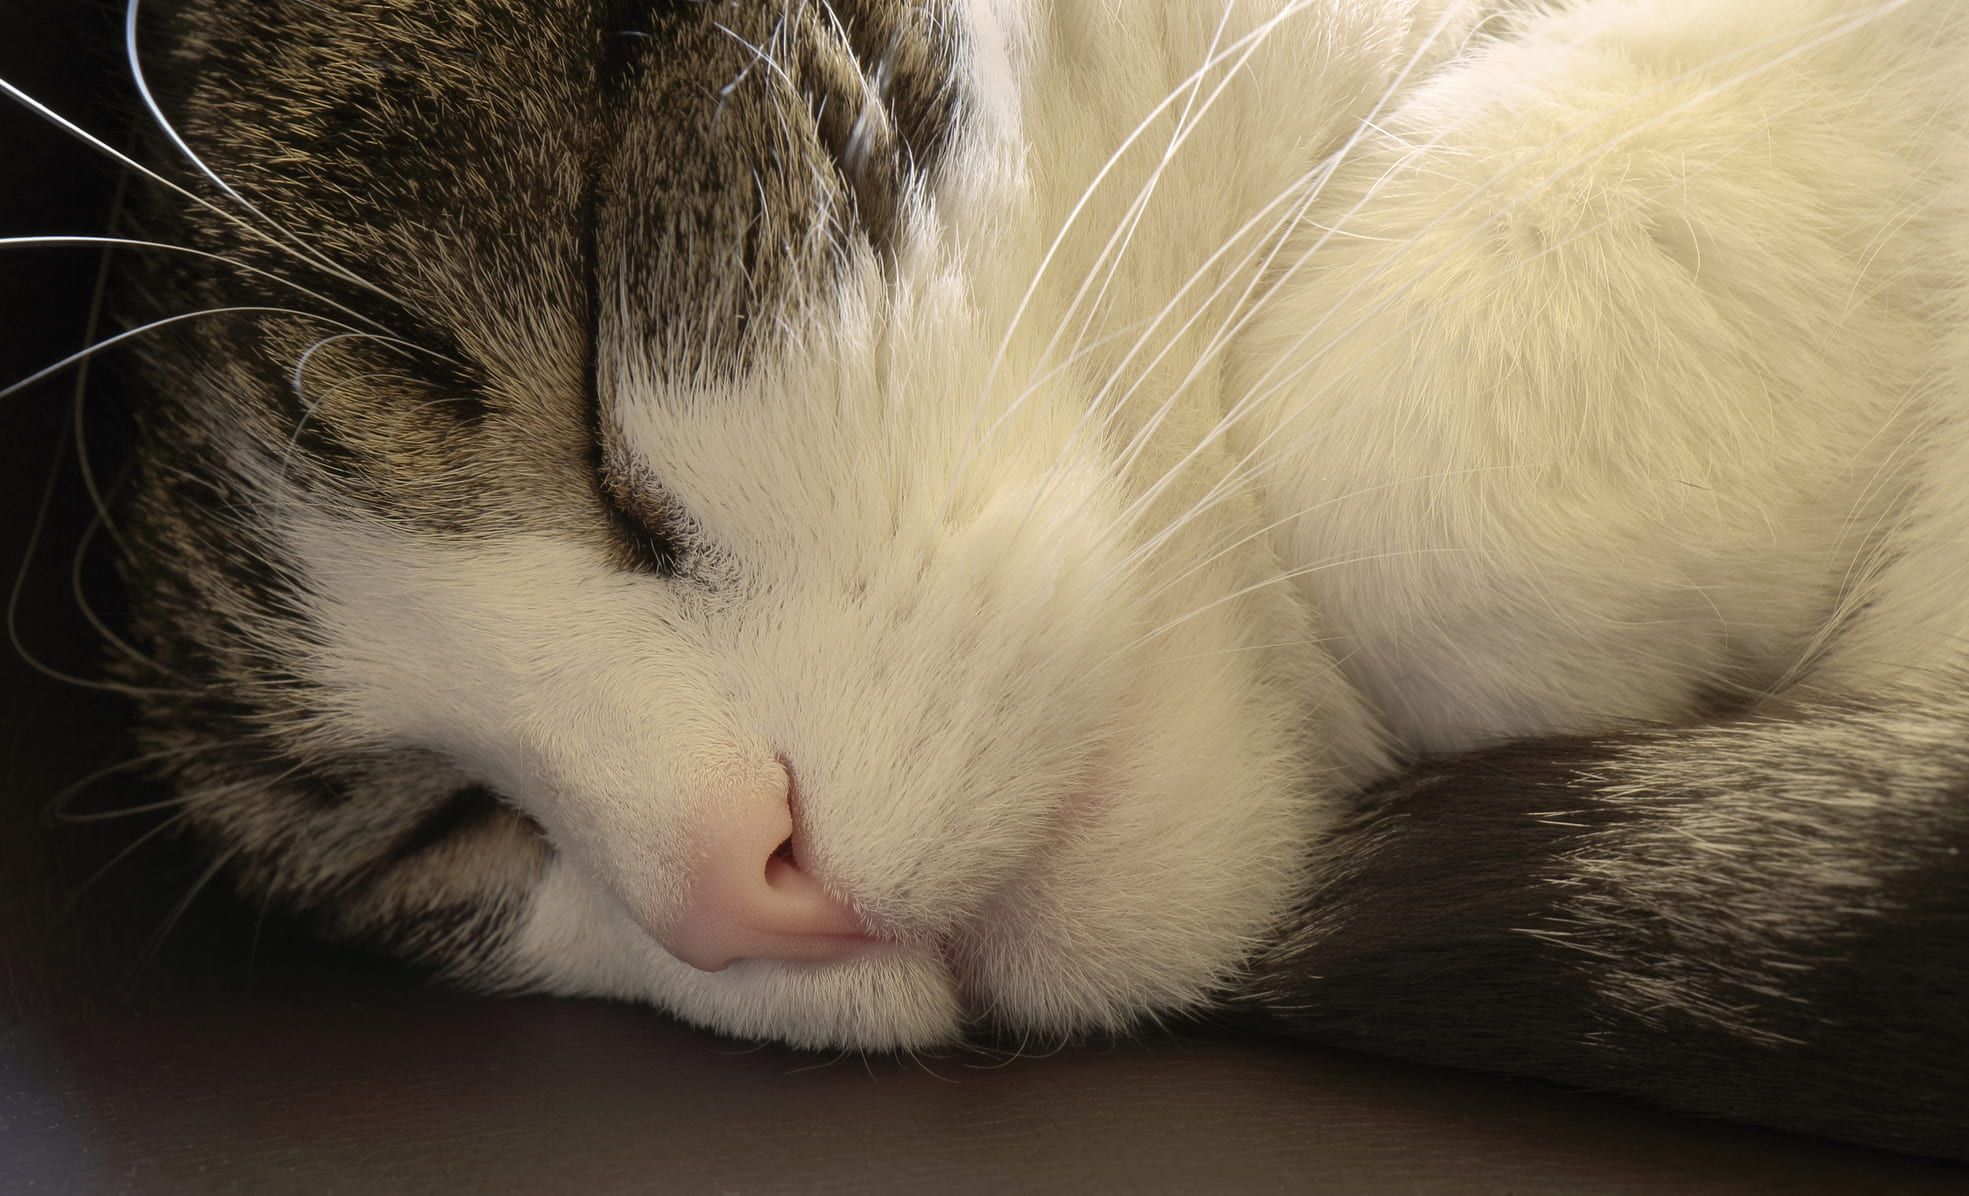 Is My Cat Sleeping Too Much Purrfect Love Cat Sleeping Cats Sleeping Too Much